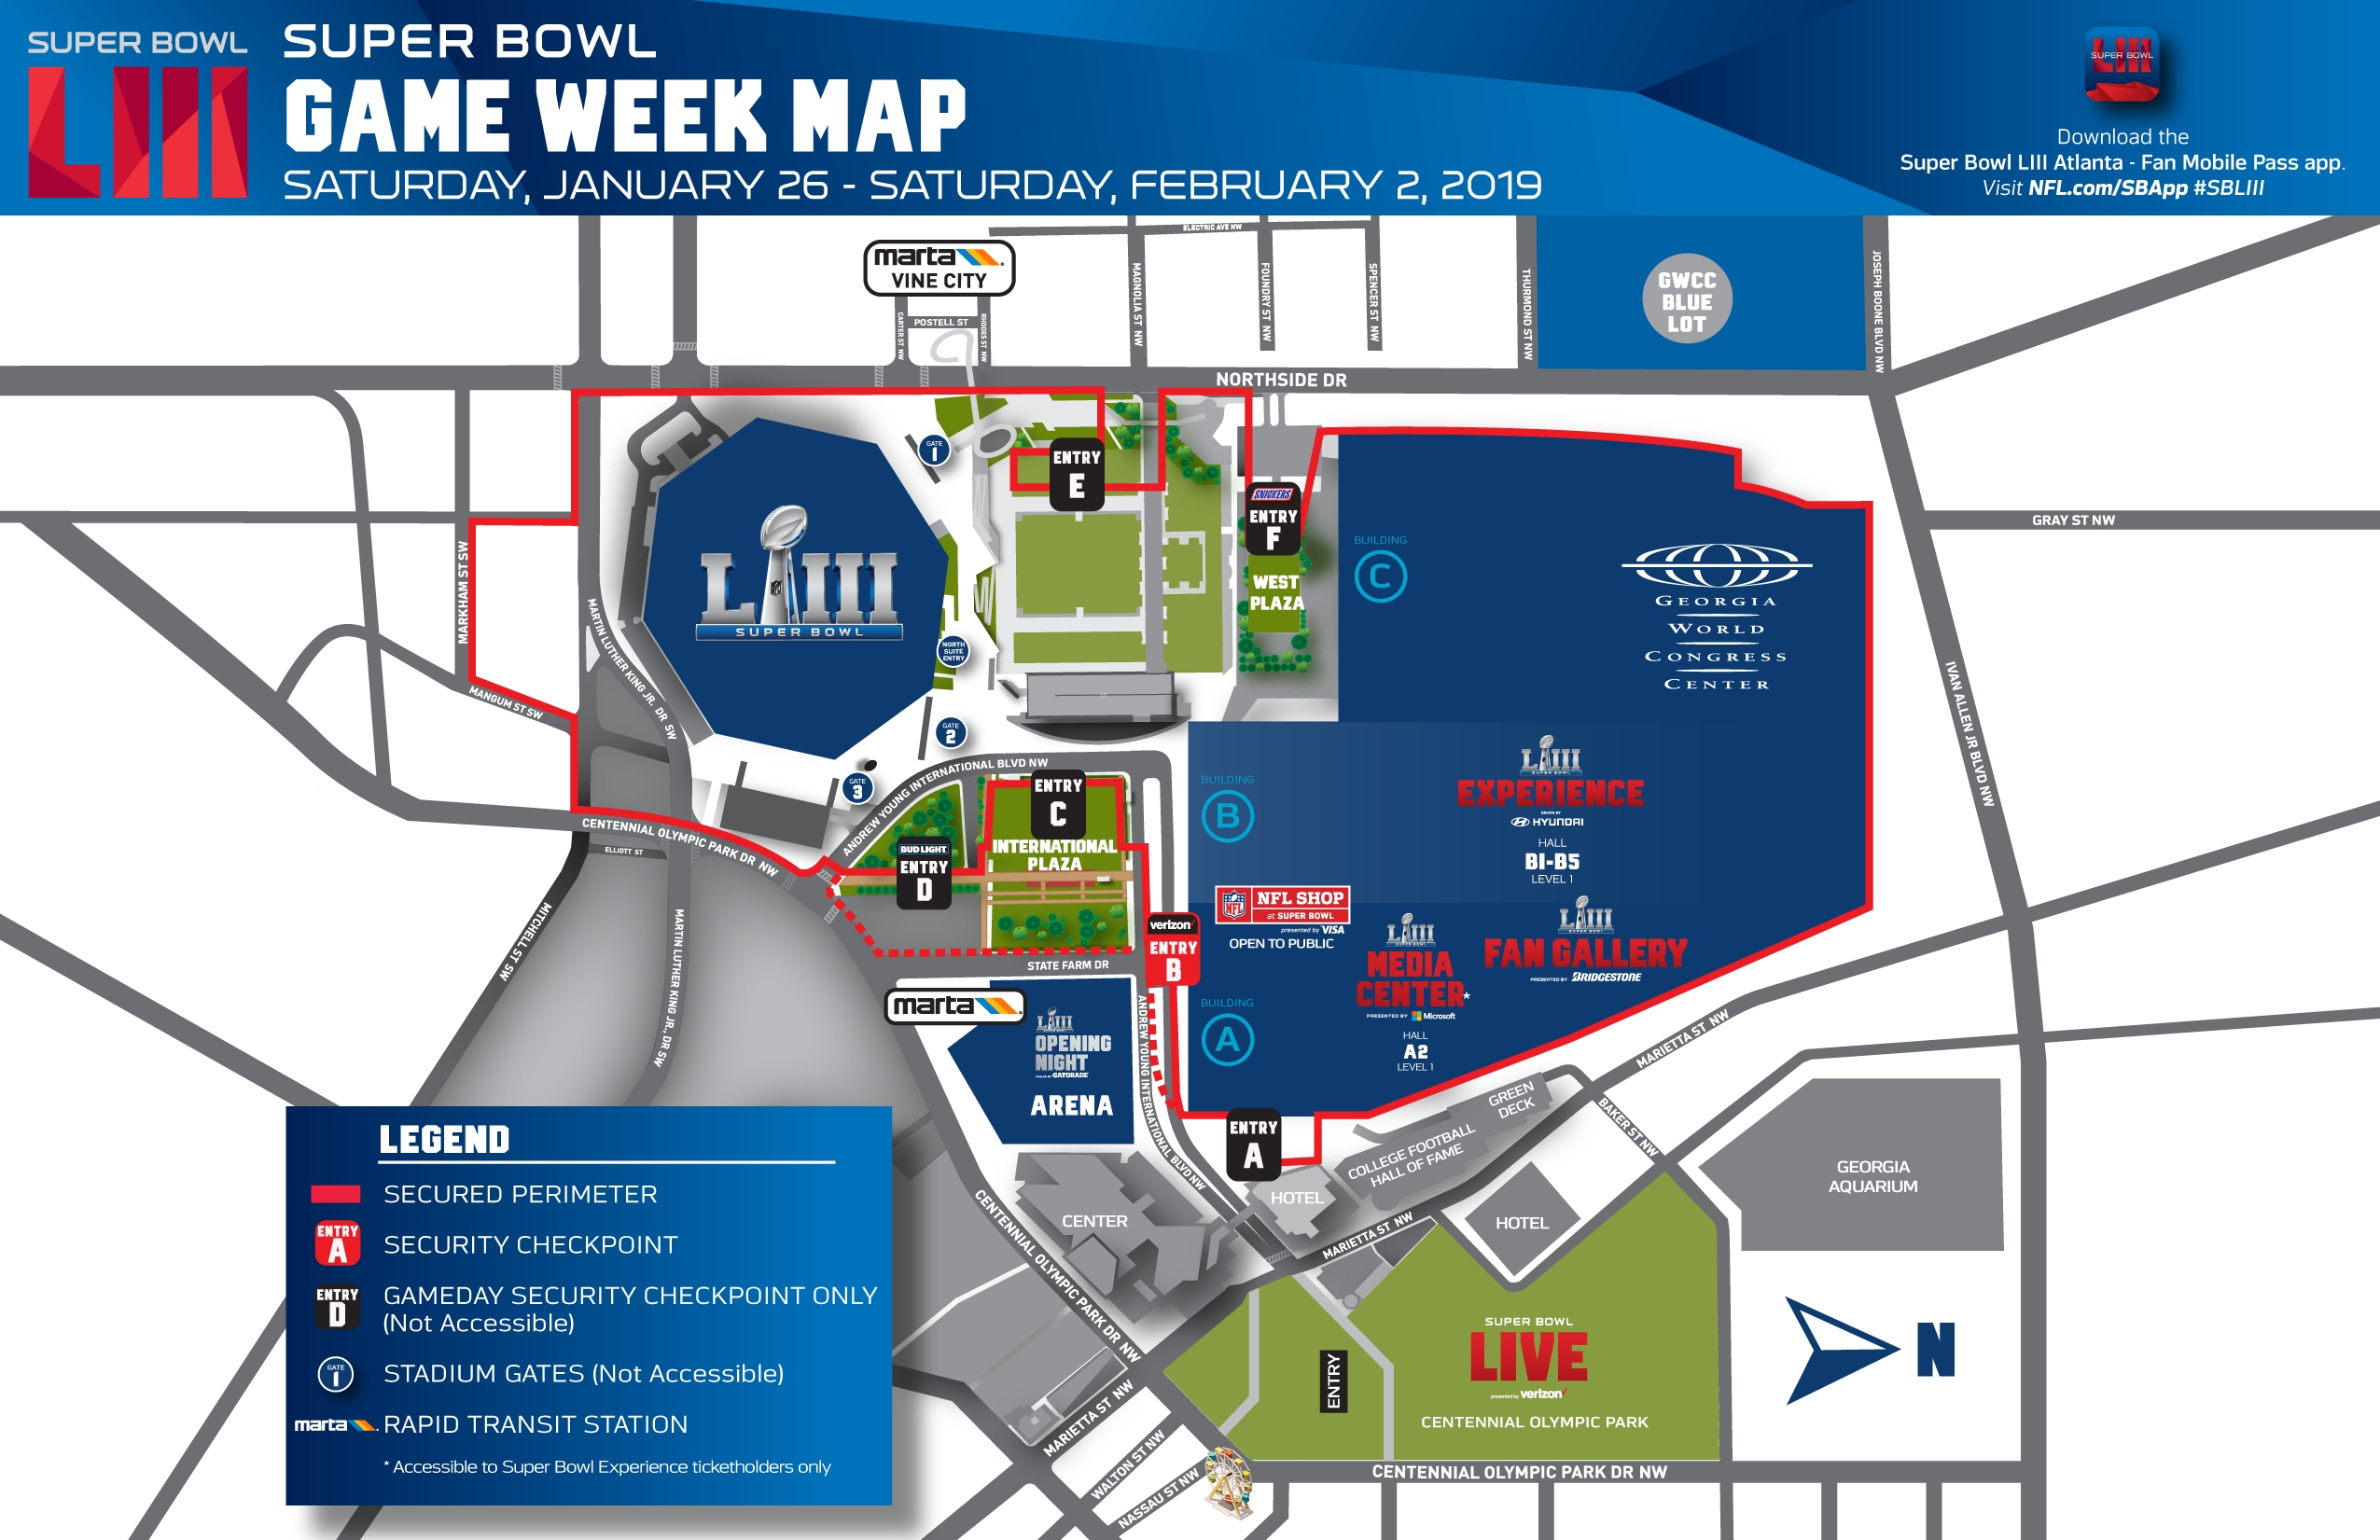 Super Bowl Experience | Nfl | Nfl with regard to Nfl Super Bowl Map